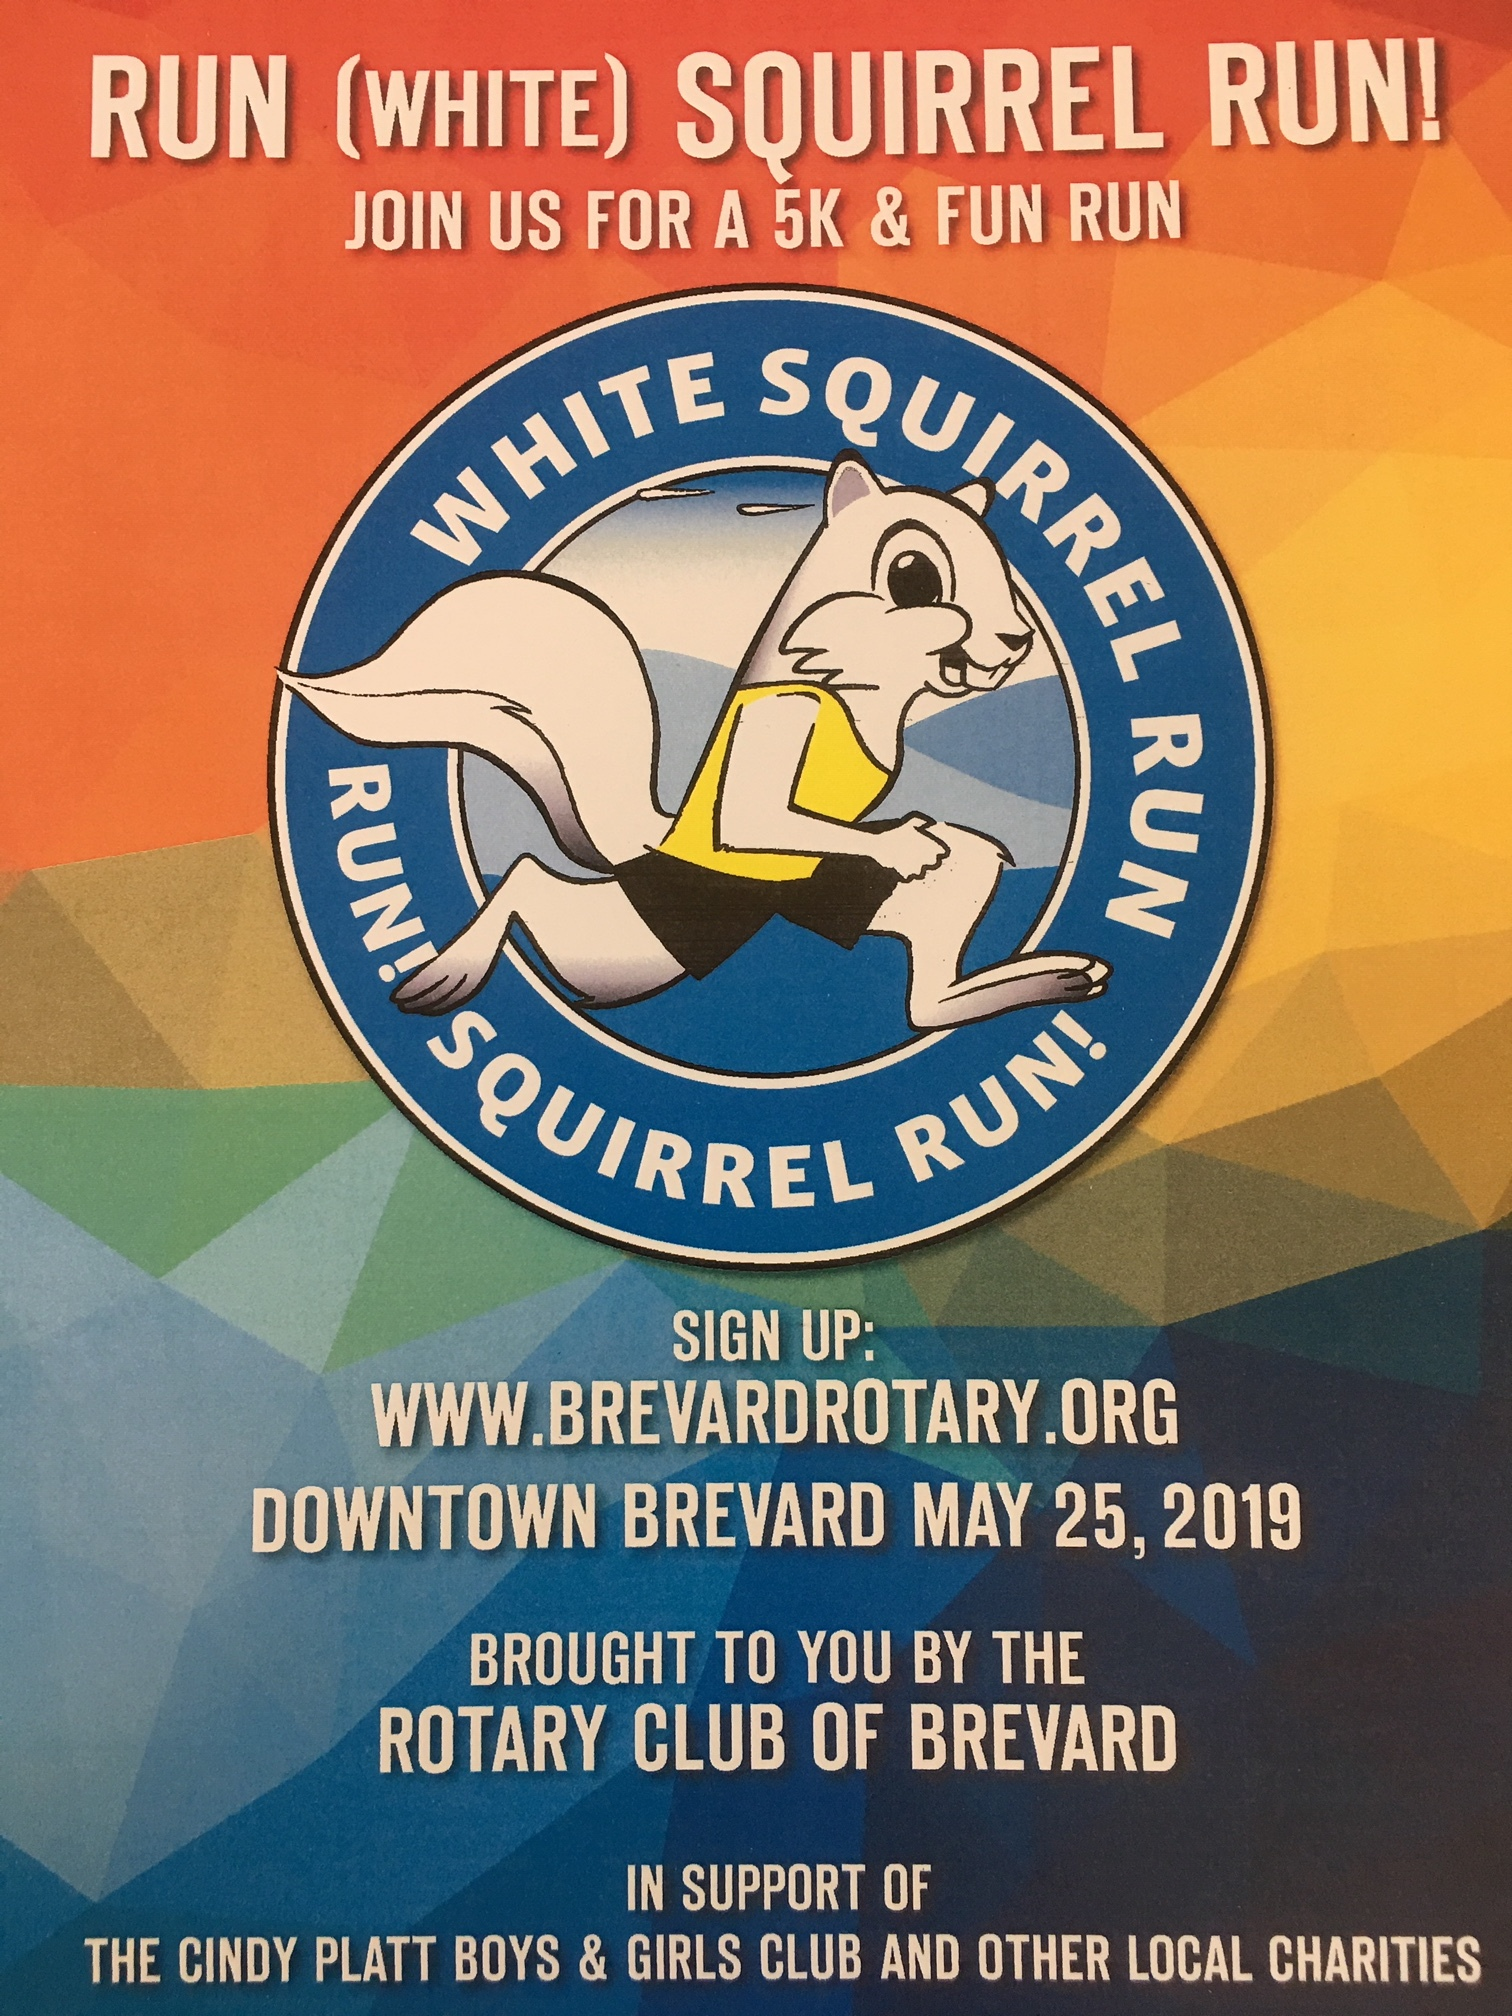 White squirrel run poster.JPG